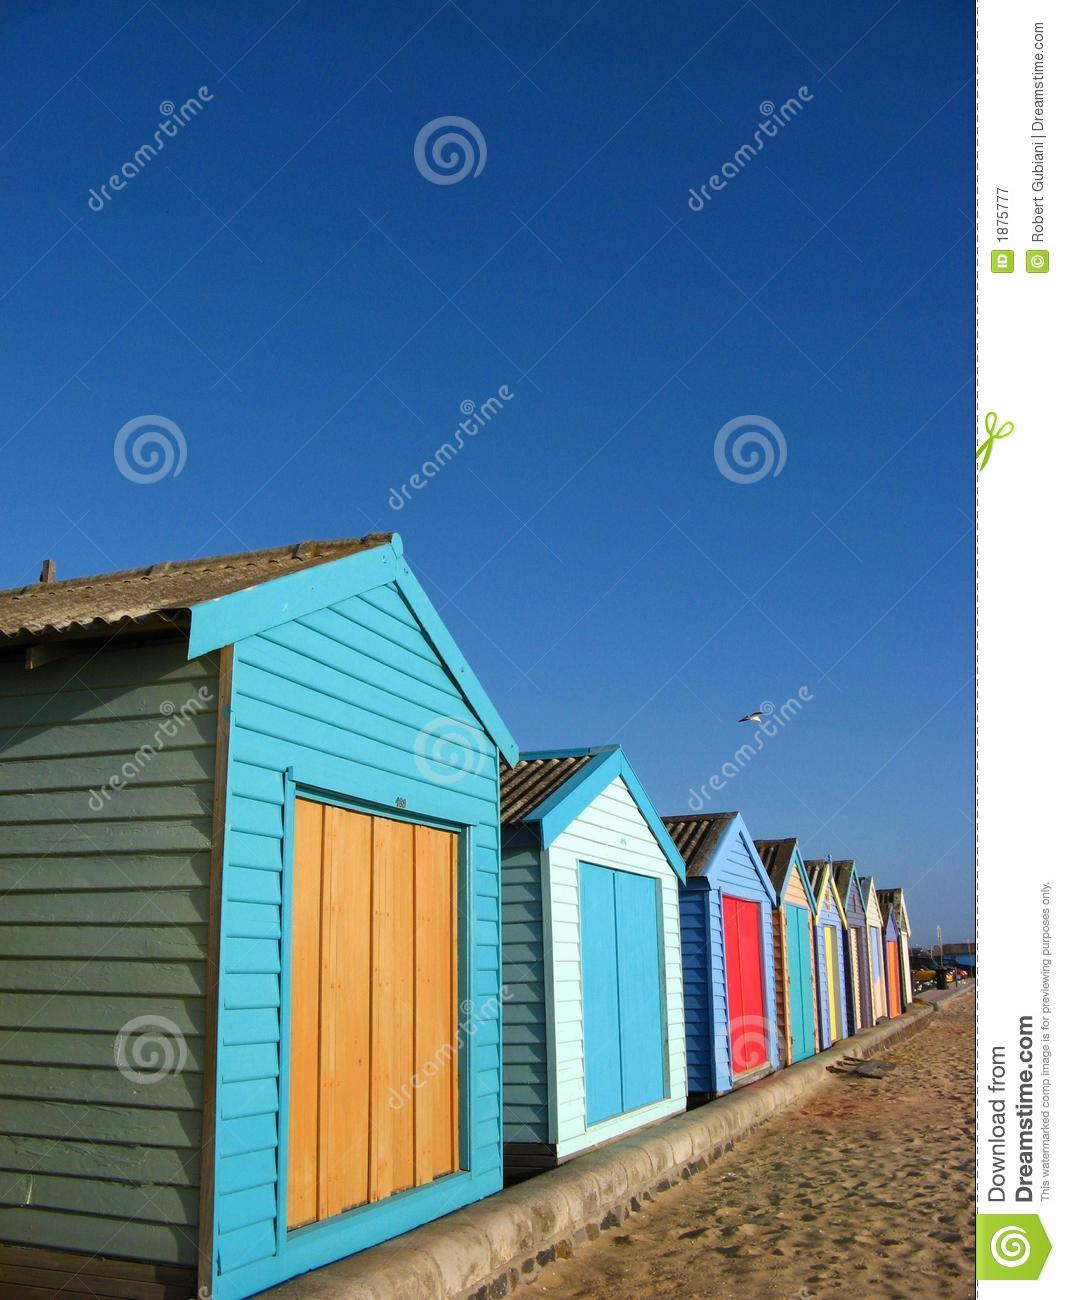 Gentil Storage Sheds On The Beach